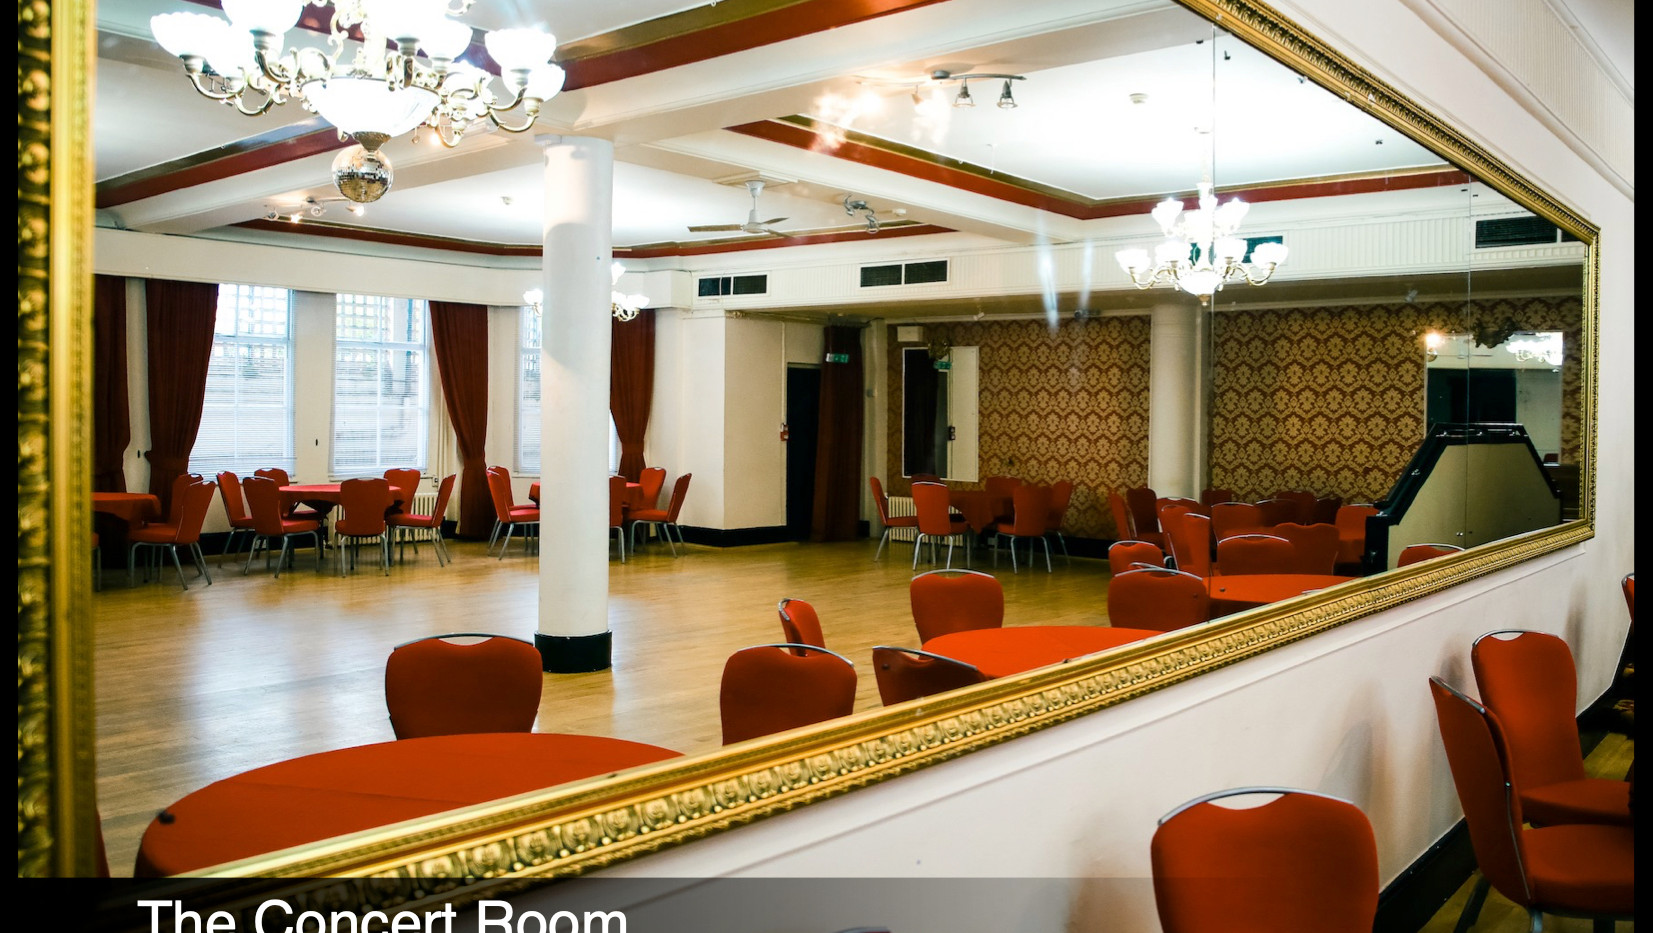 The concert room - EASTBOURNE